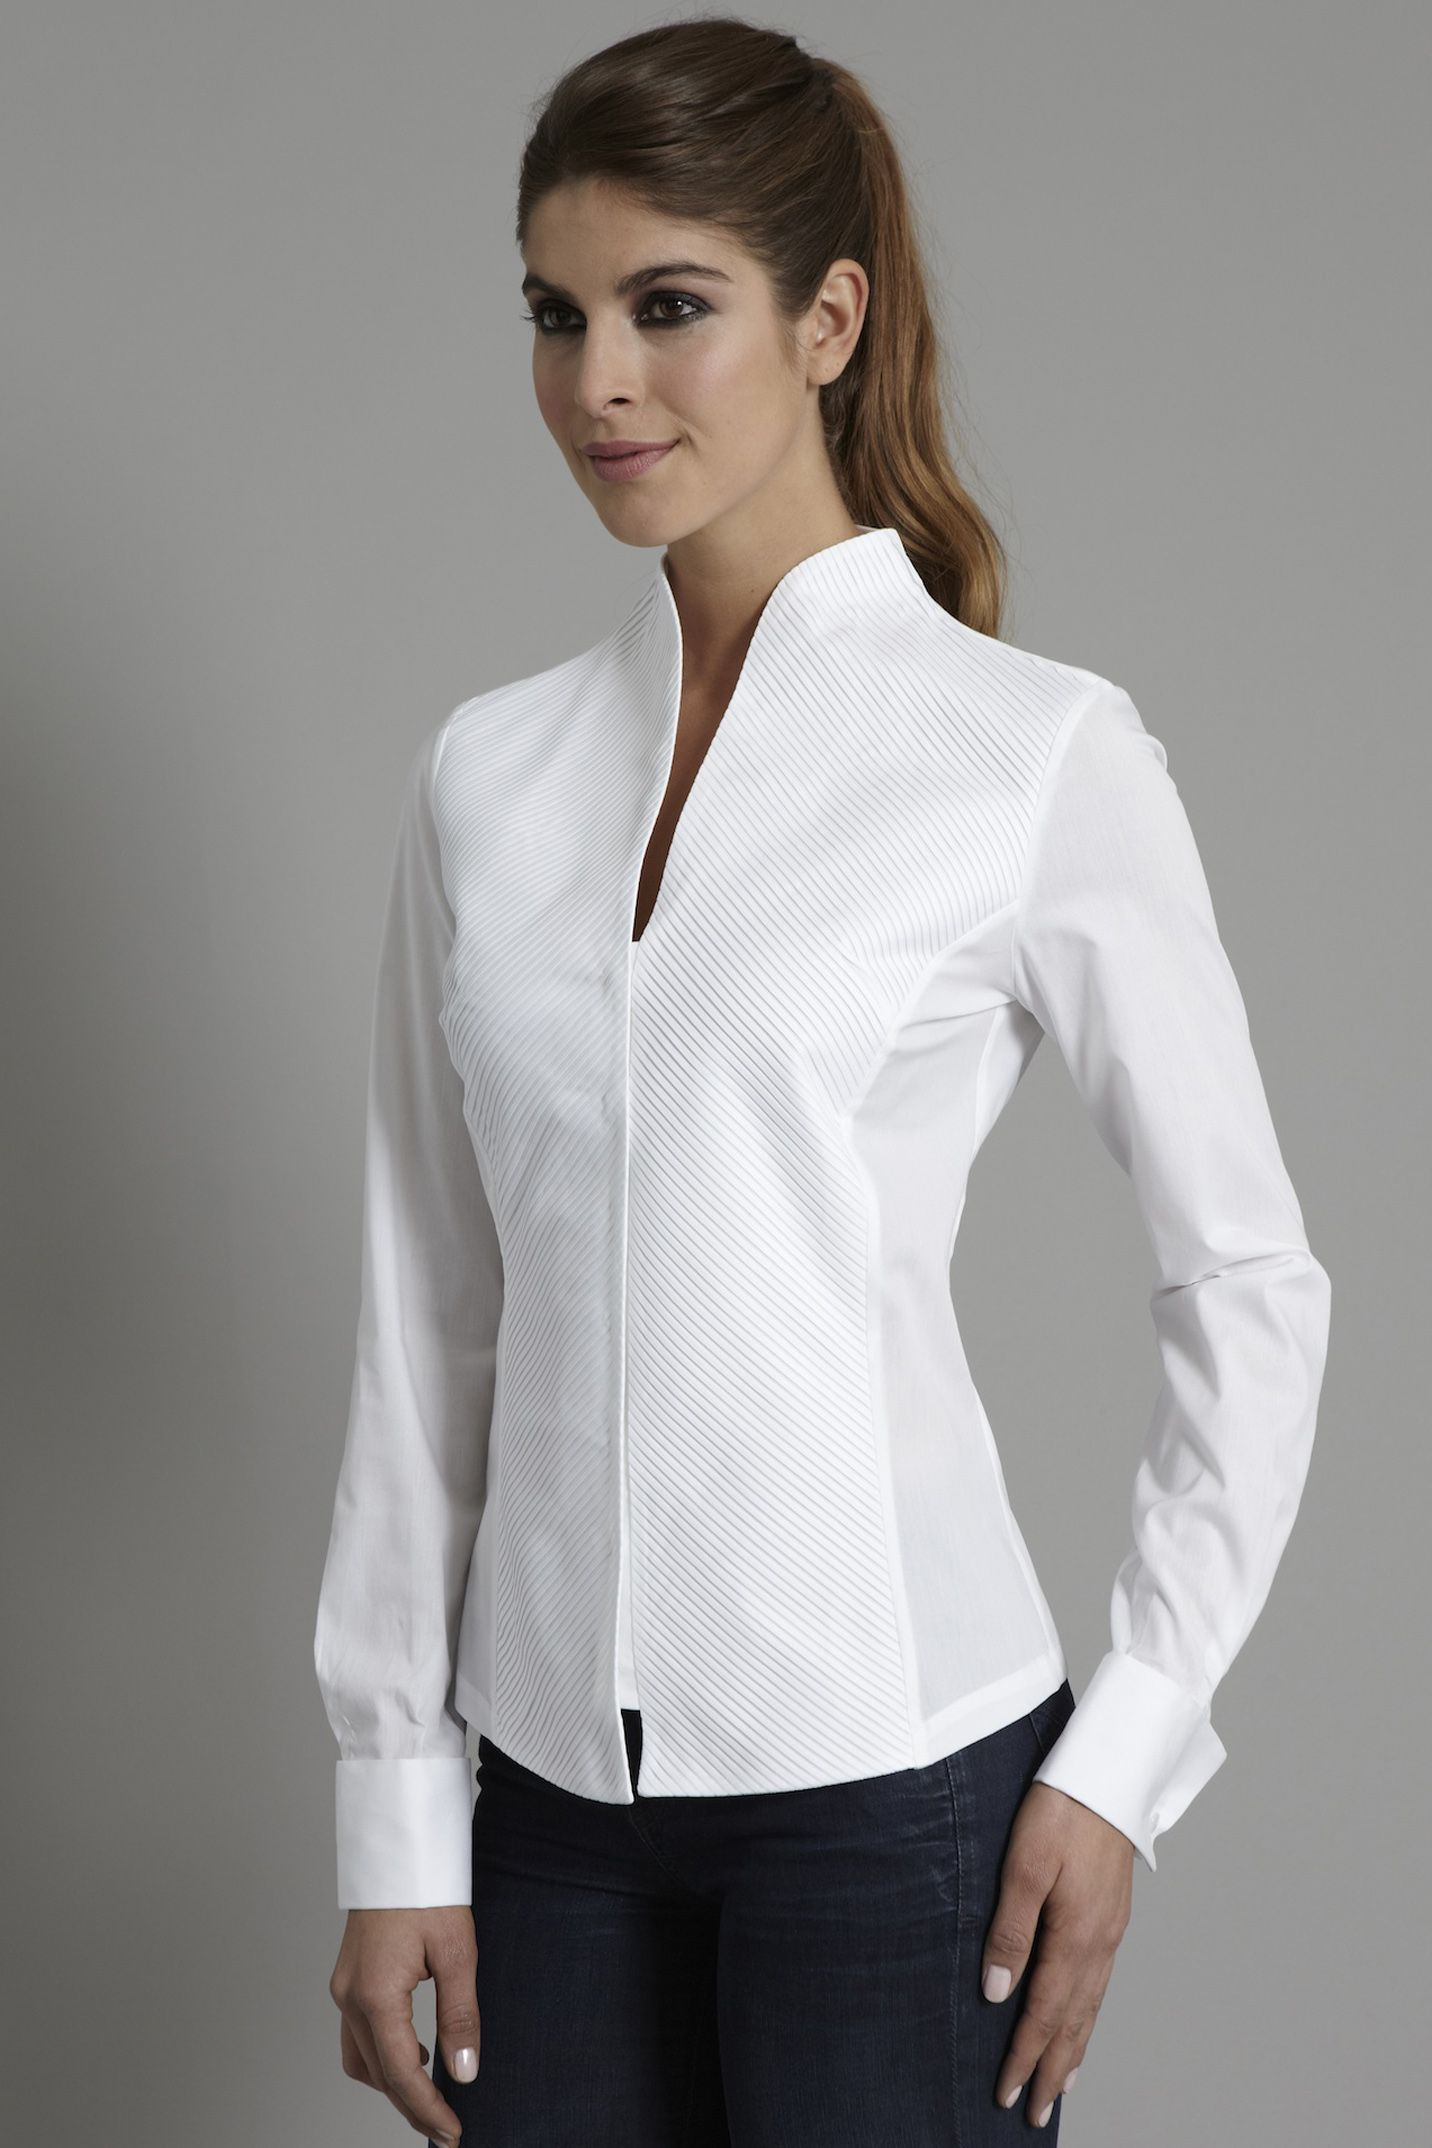 Penelope White Shirt | Collar shirts and Modern